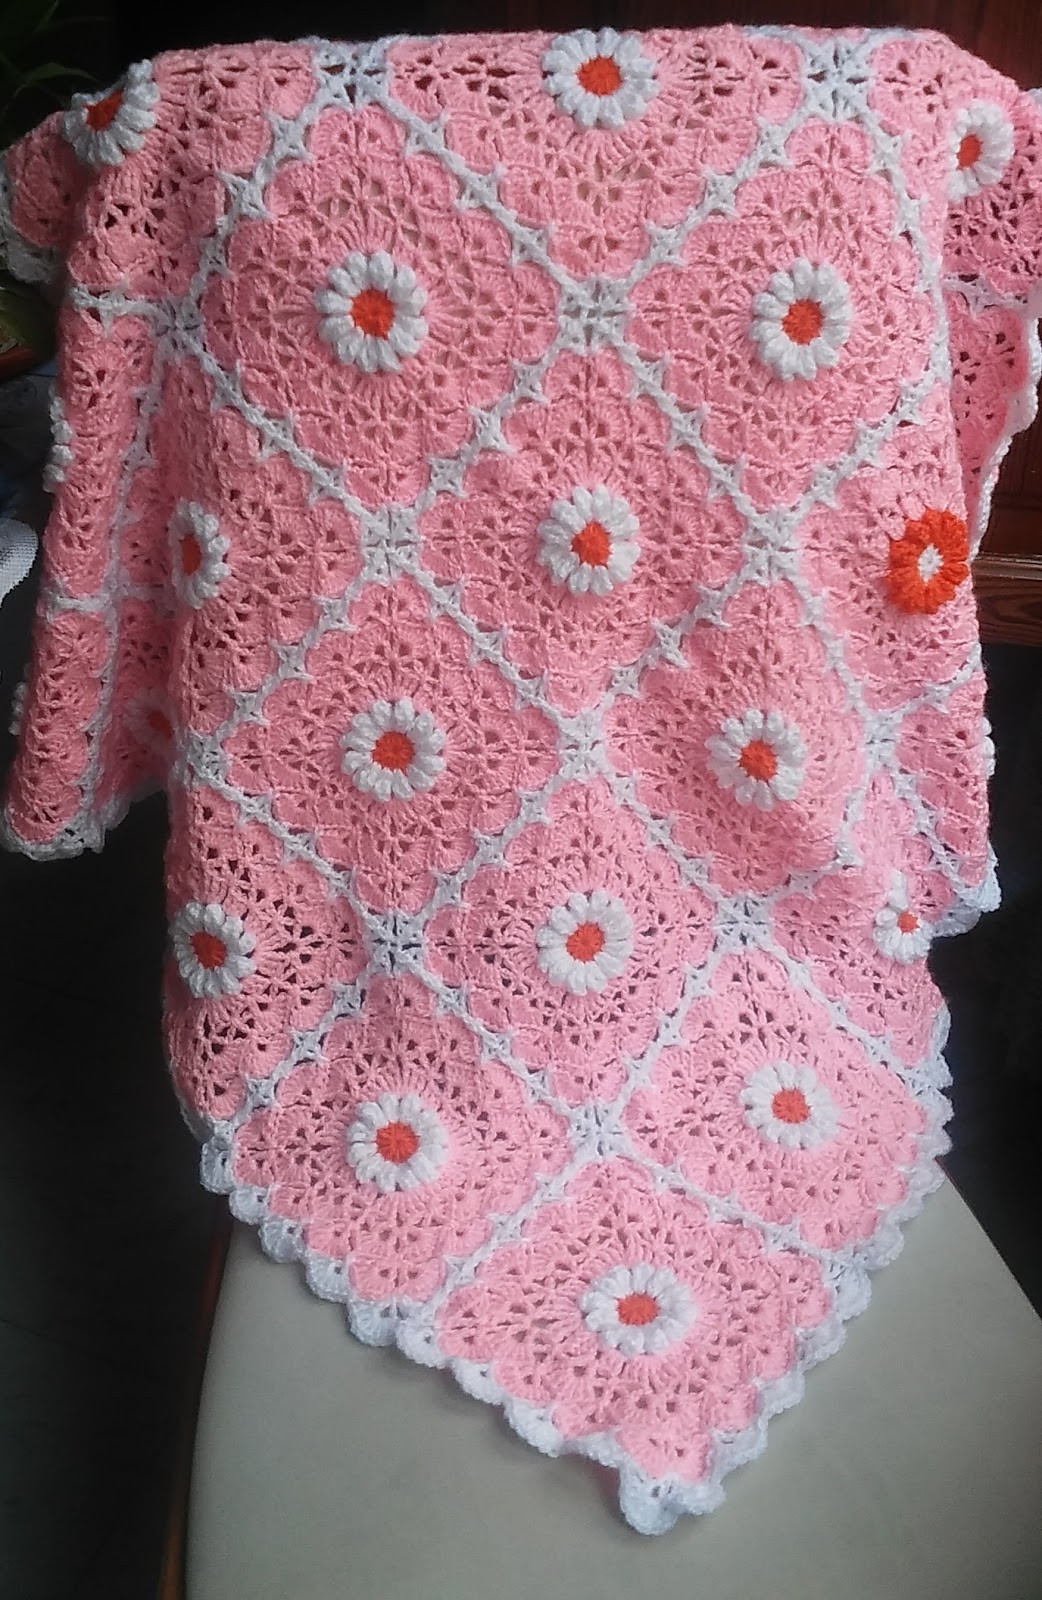 Fresh 12 Free and Cute Baby Blanket Crochet Patterns Baby Blankets to Crochet Of Amazing 46 Images Baby Blankets to Crochet